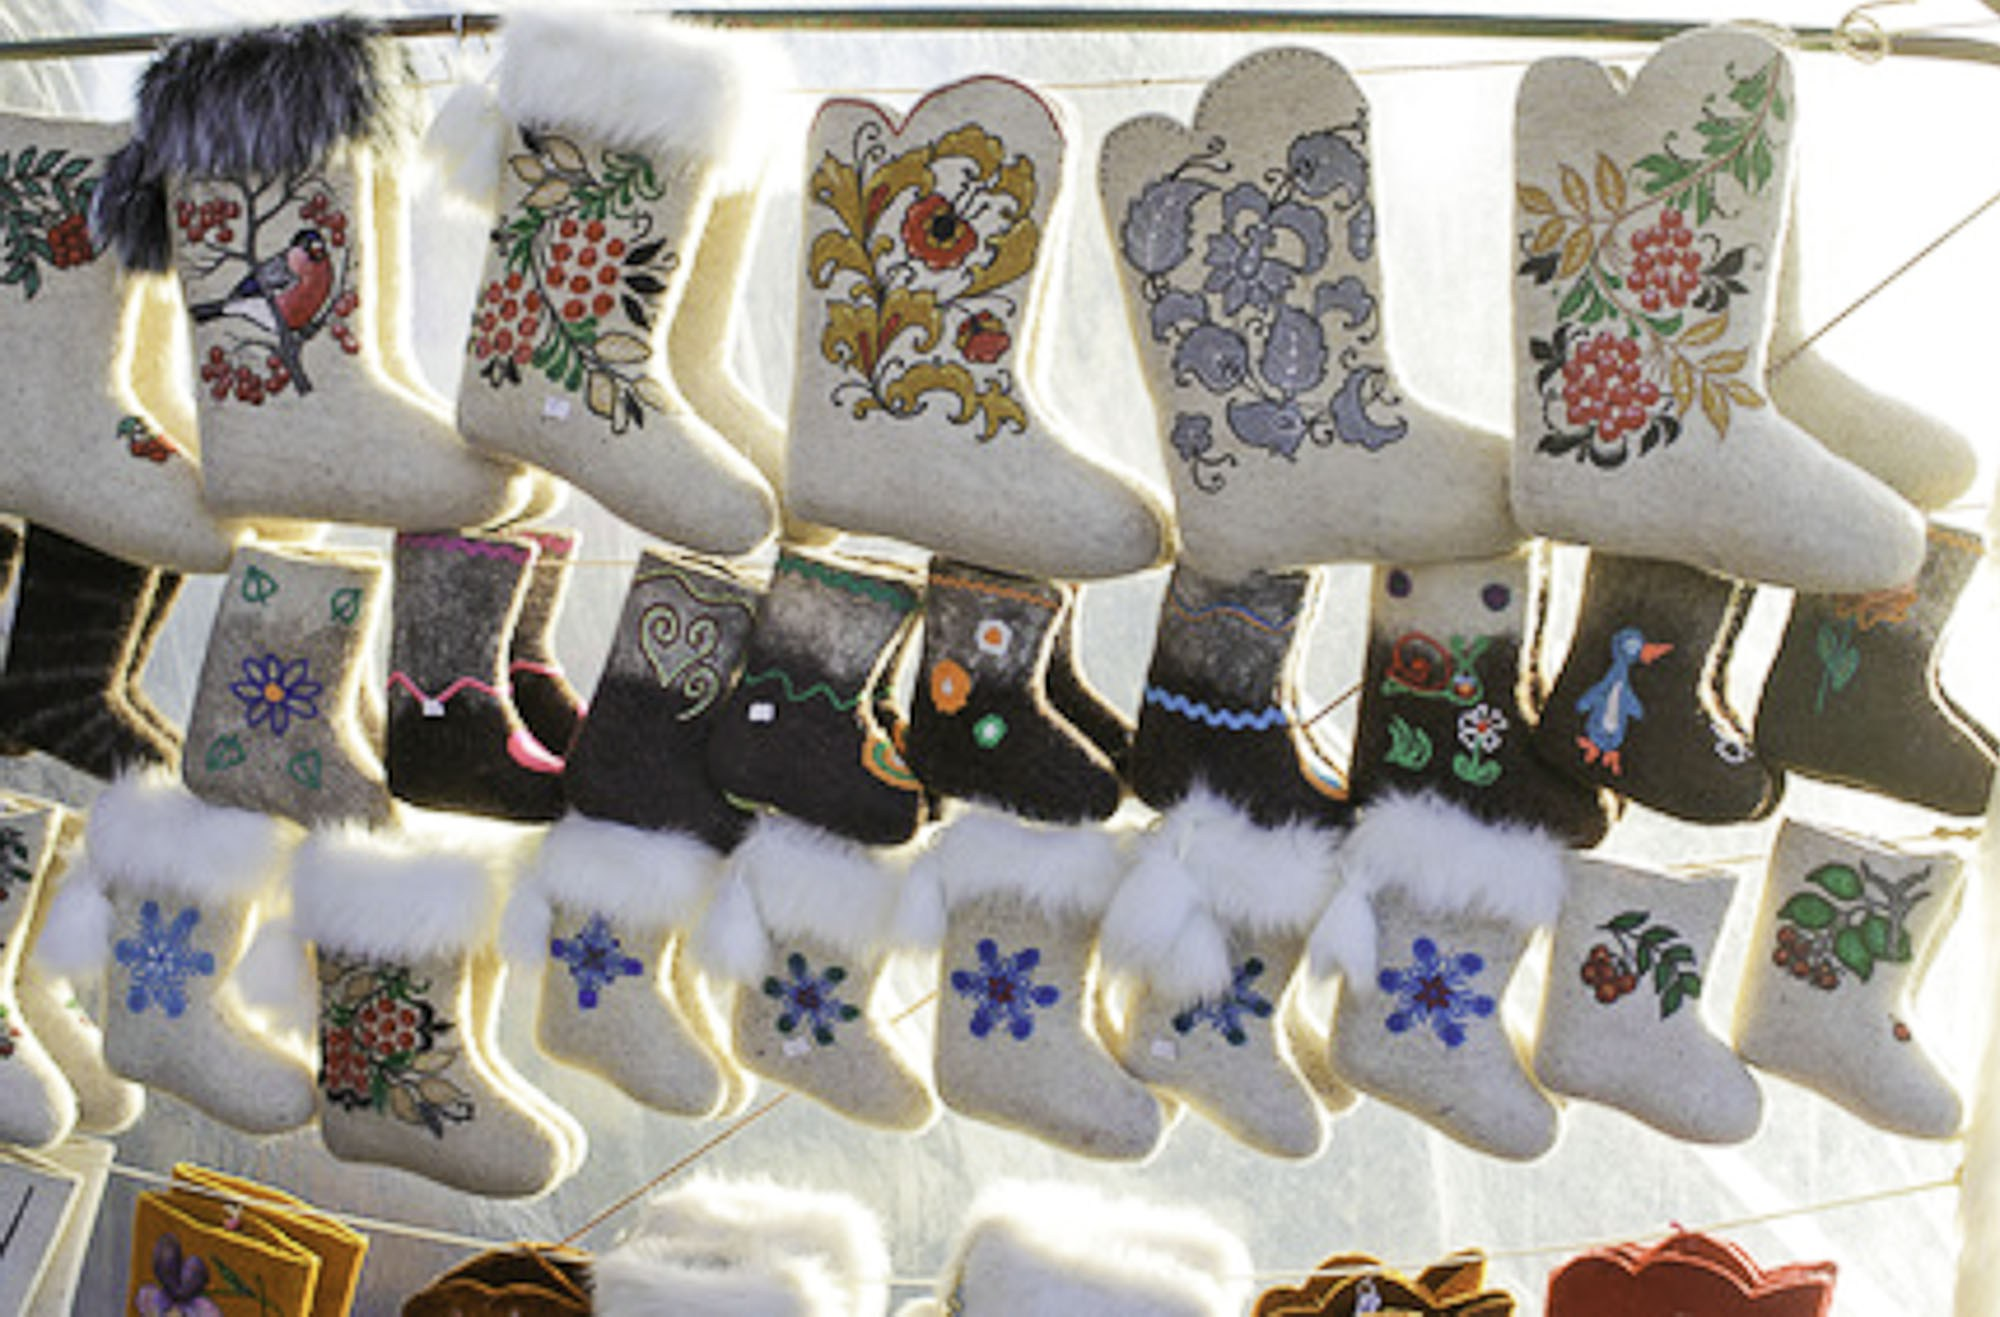 Best souvenirs to bring from your trip to Russia - Valenki